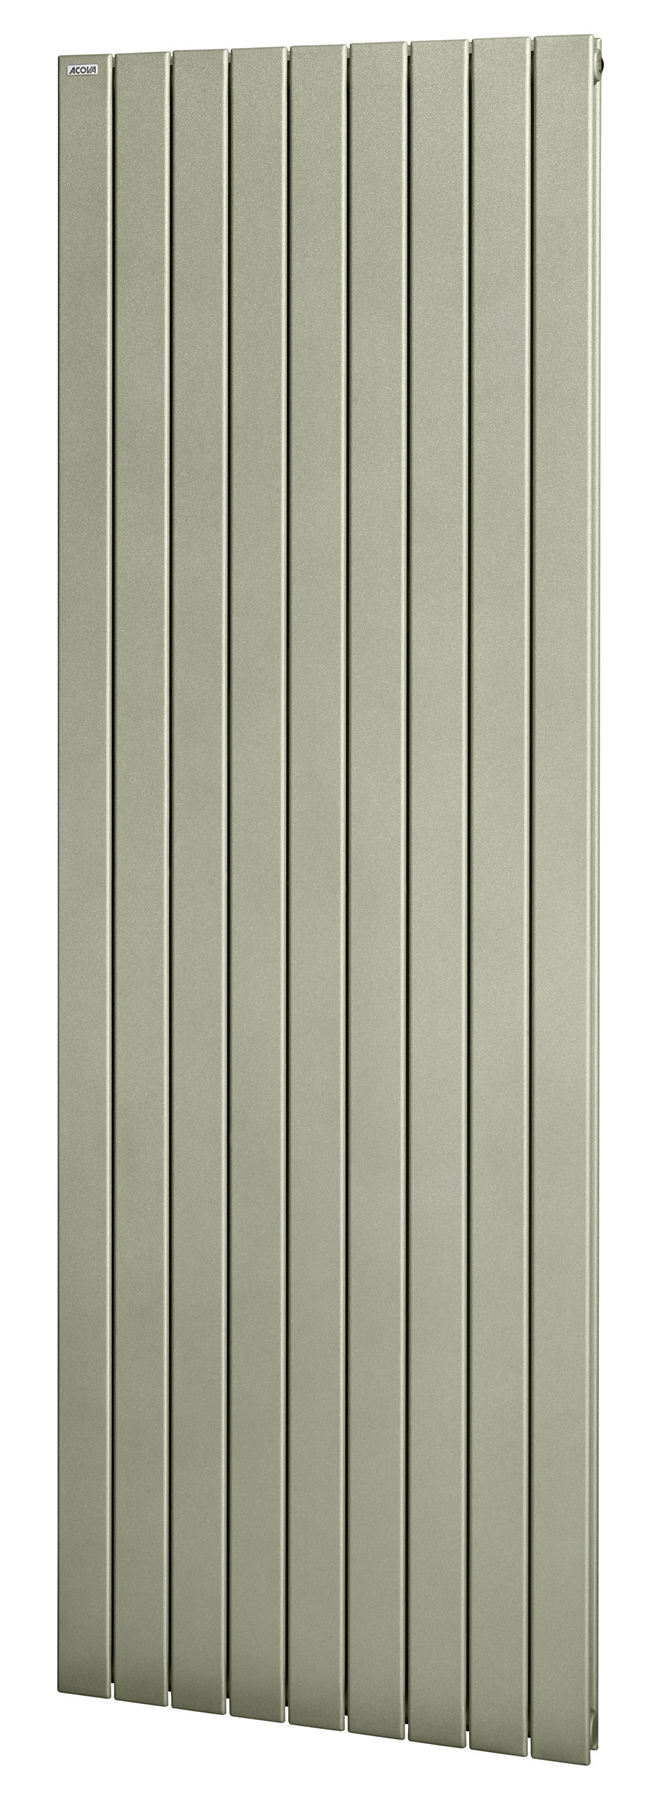 acova radiateur chauffage central fassane stock vertical vertival double shxd puissance. Black Bedroom Furniture Sets. Home Design Ideas